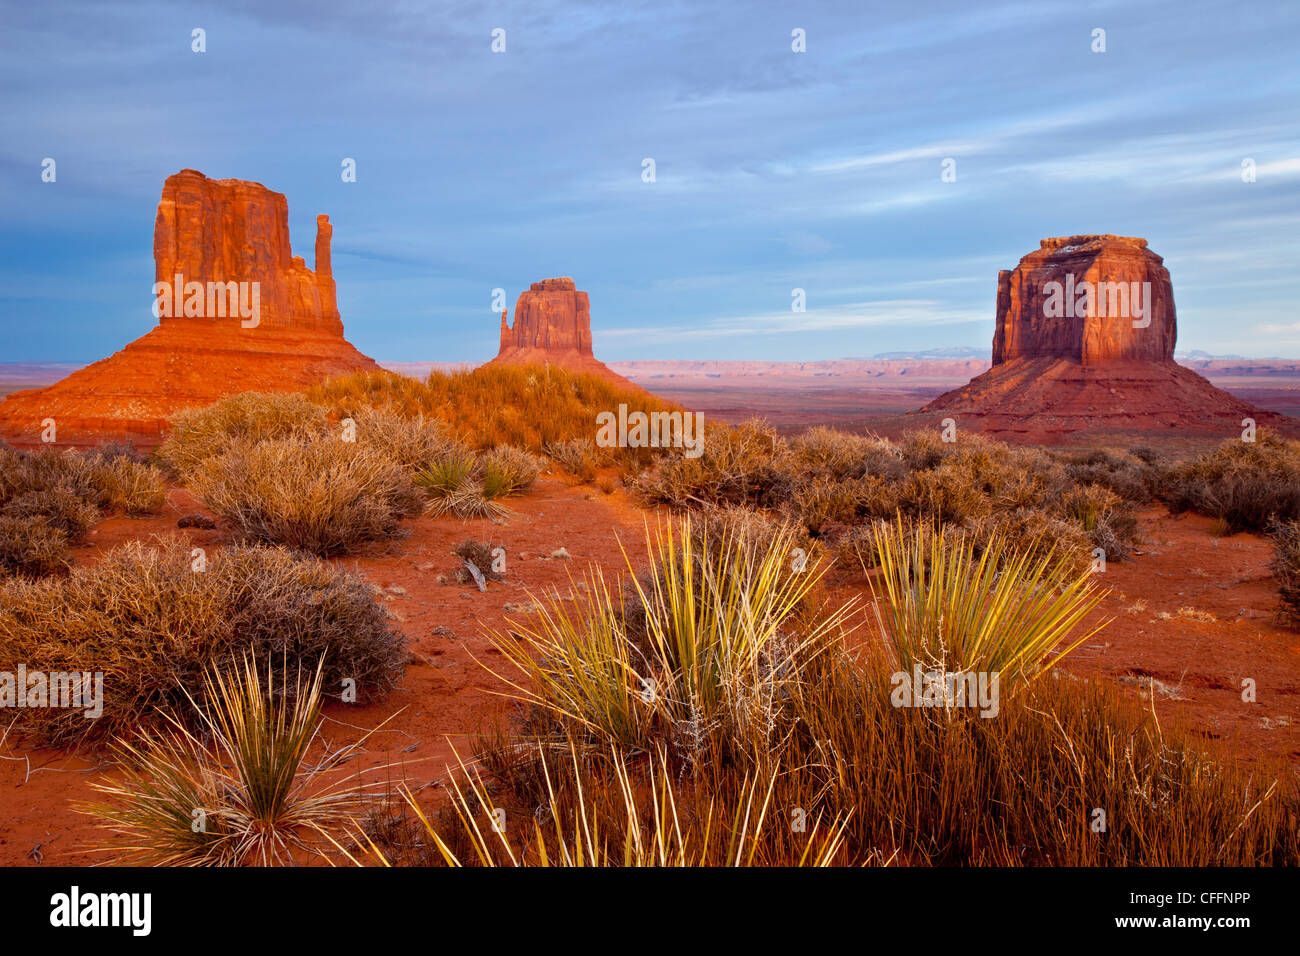 Sunset over the Mittens and Merrick Butte, Monument Valley, Arizona USA - Stock Image